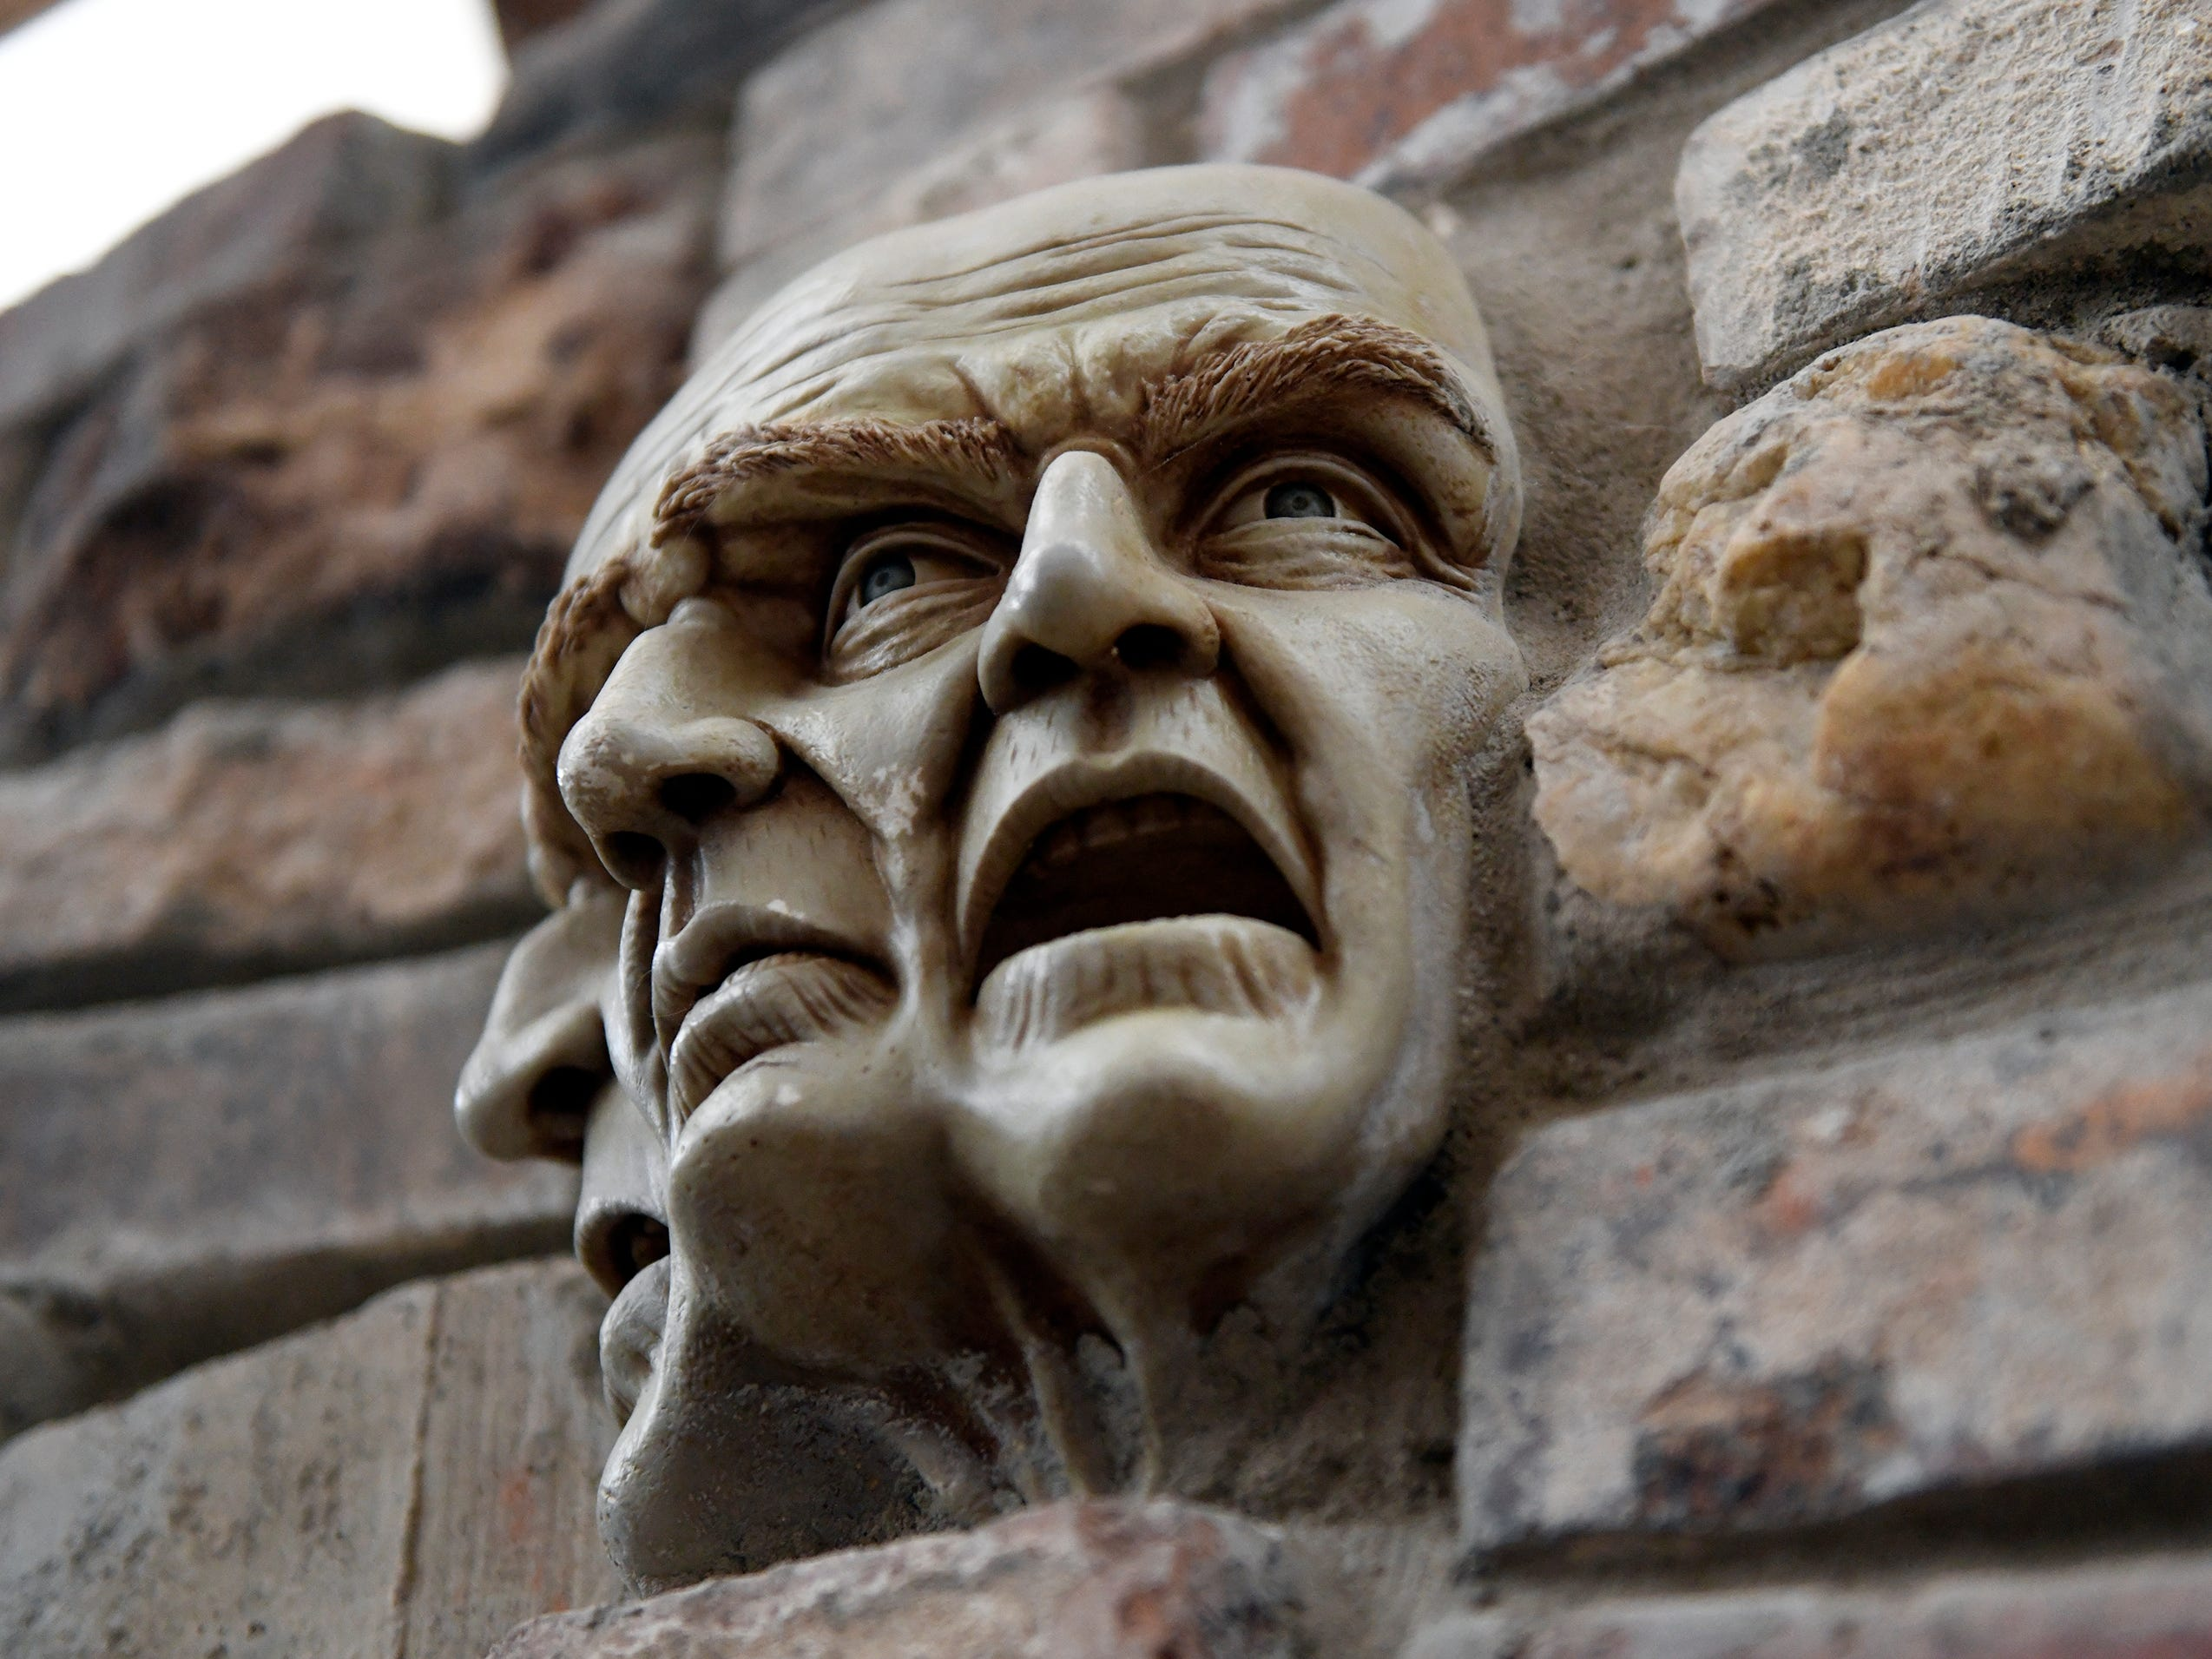 The brick walls at Palace of Depression, on Mill Road in Vineland, are adorned with many small ceramic figures, glass bottles and various metal trinkets including this three faced head.